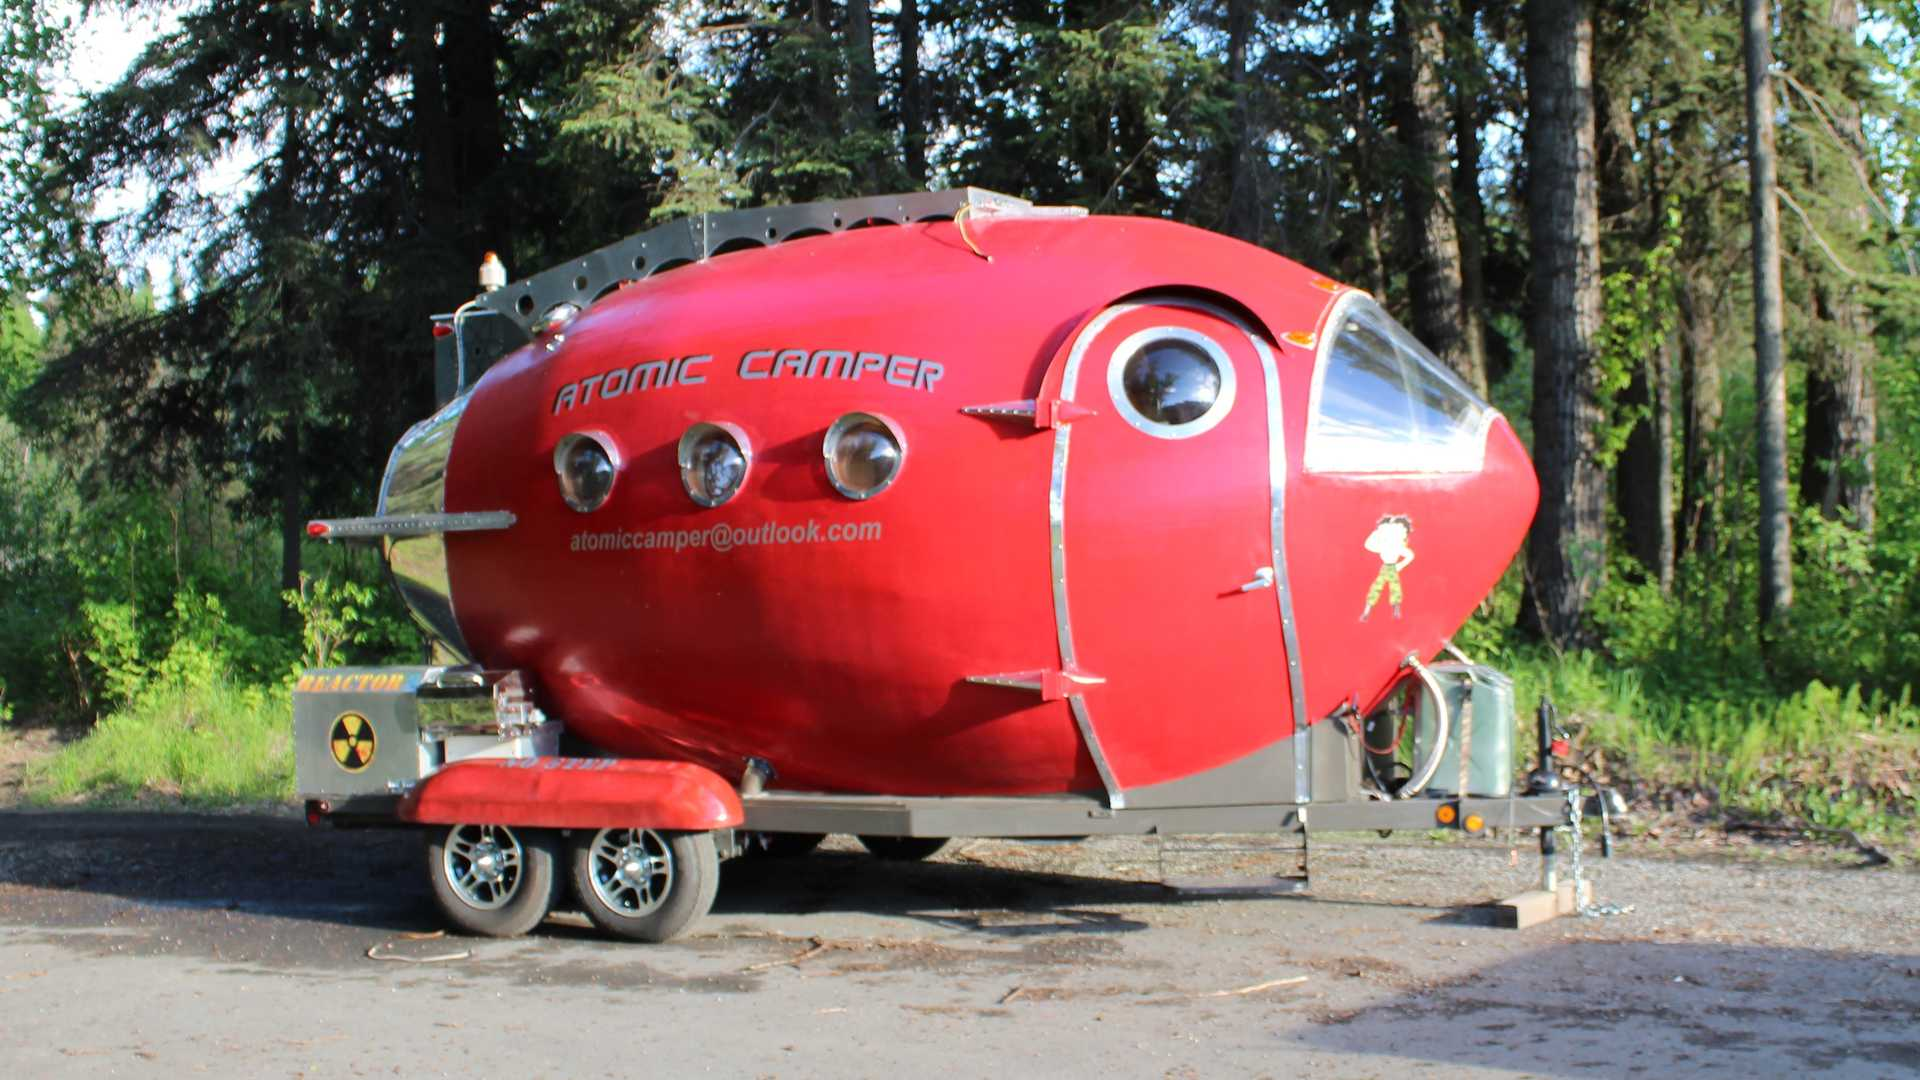 Atomic Camper Is The Crazy Cool RV Spaceship Of Your Dreams